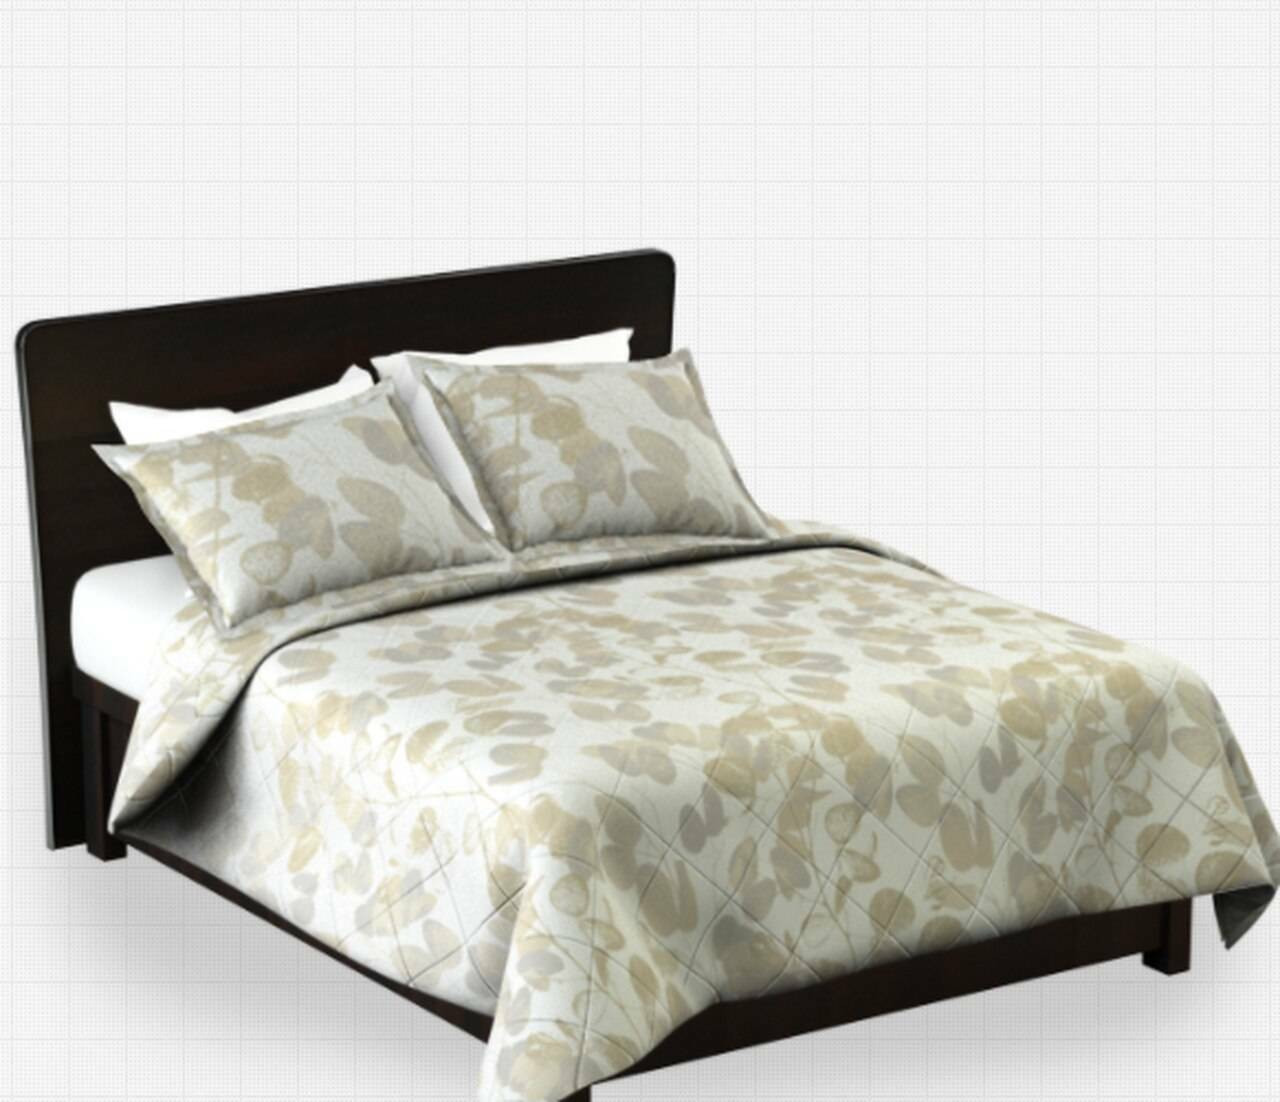 Martex RX Bedding by Westpoint Hospitality Martex Rx Bedding or Coverlets